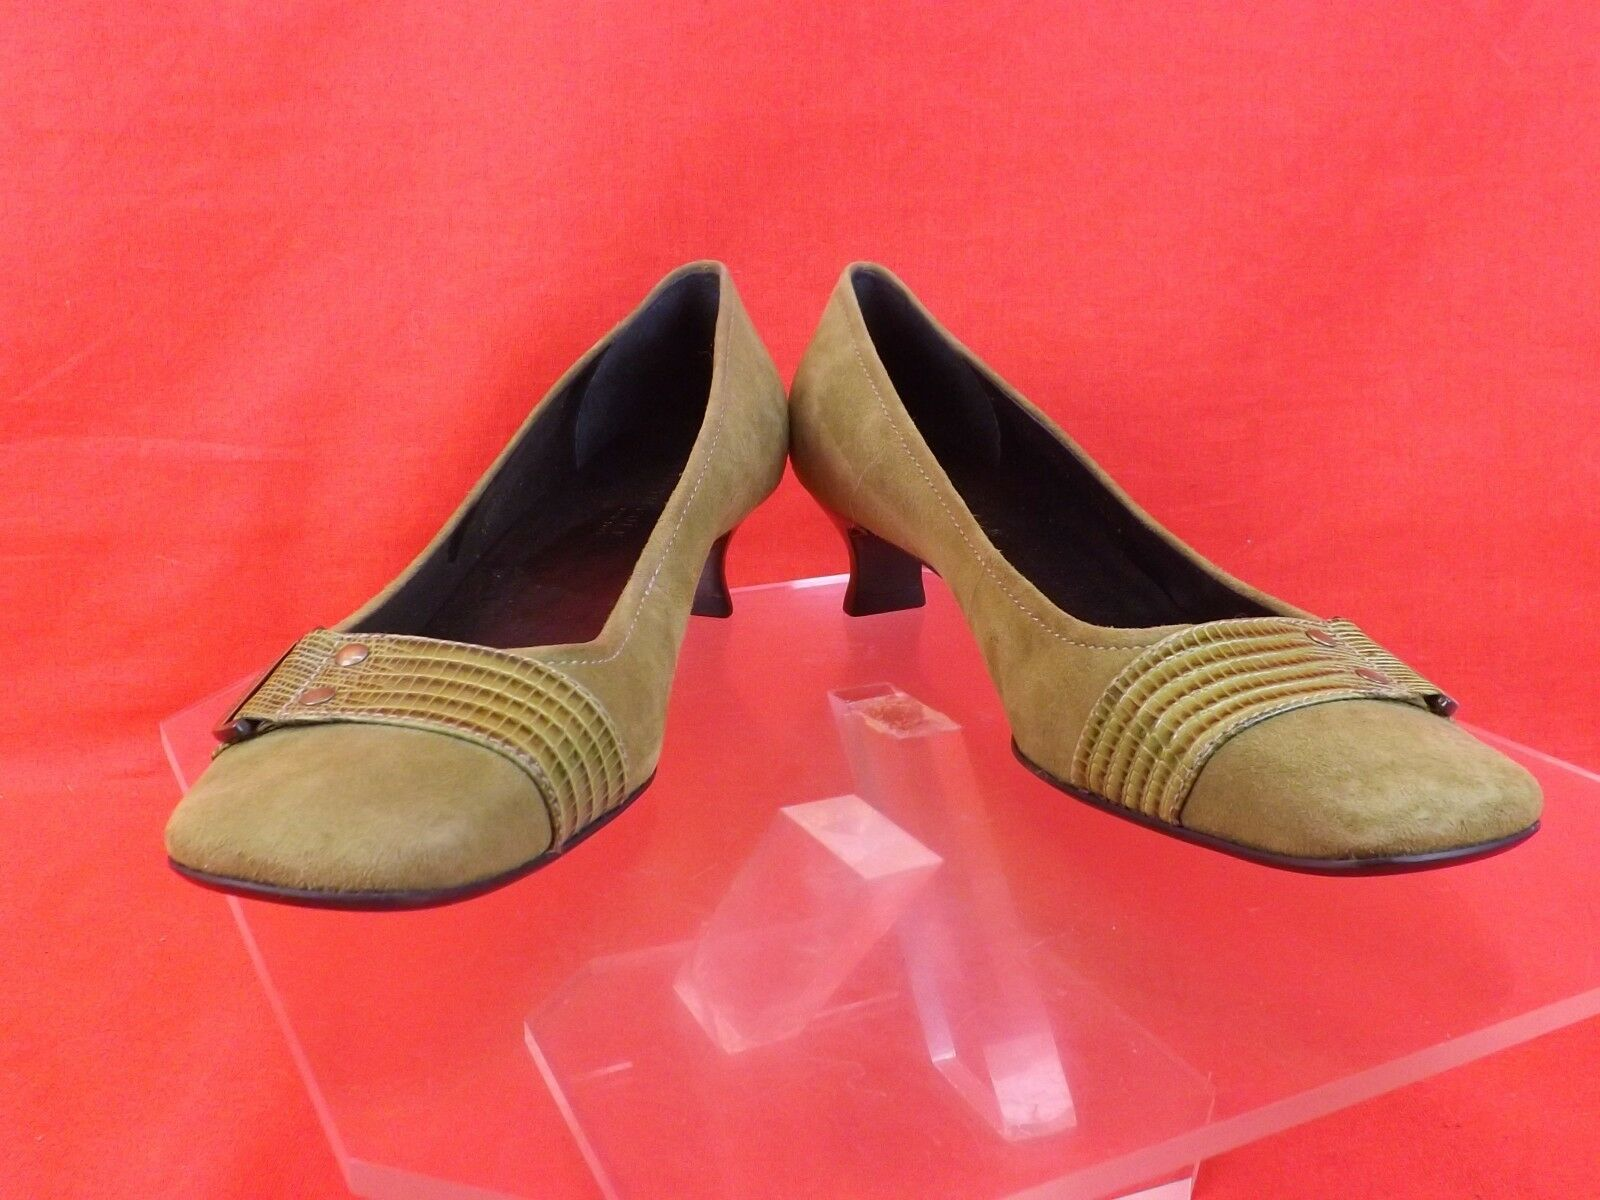 NWB KENNETH COLE OLIVE SUEDE CROCODILE LTH BELTED KITTEN HEEL PUMPS 8.5 BRAZIL